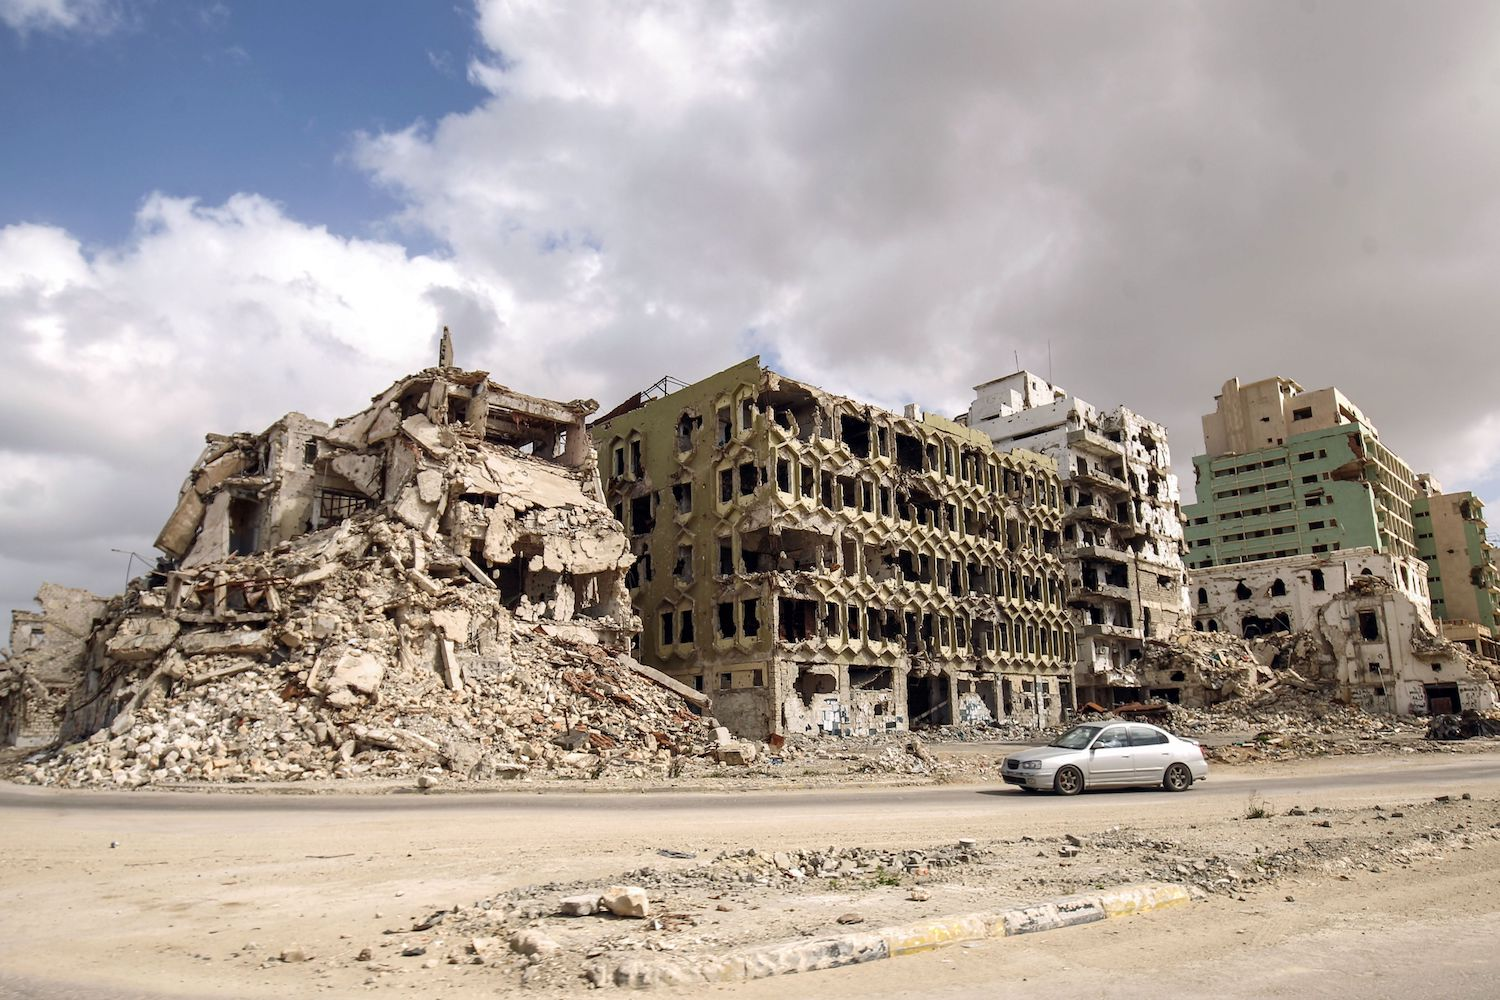 TOPSHOT - A picture taken on February 15, 2018 shows a view of destroyed buildings along the seaside promenade of Libya's eastern city of Benghazi near the Benghazi courthouse where demonstrations first broke in February 2011 protesting against the rule of late leader and strongman Moamer Kadhafi. / AFP PHOTO / Abdullah DOMA        (Photo credit should read ABDULLAH DOMA/AFP/Getty Images)